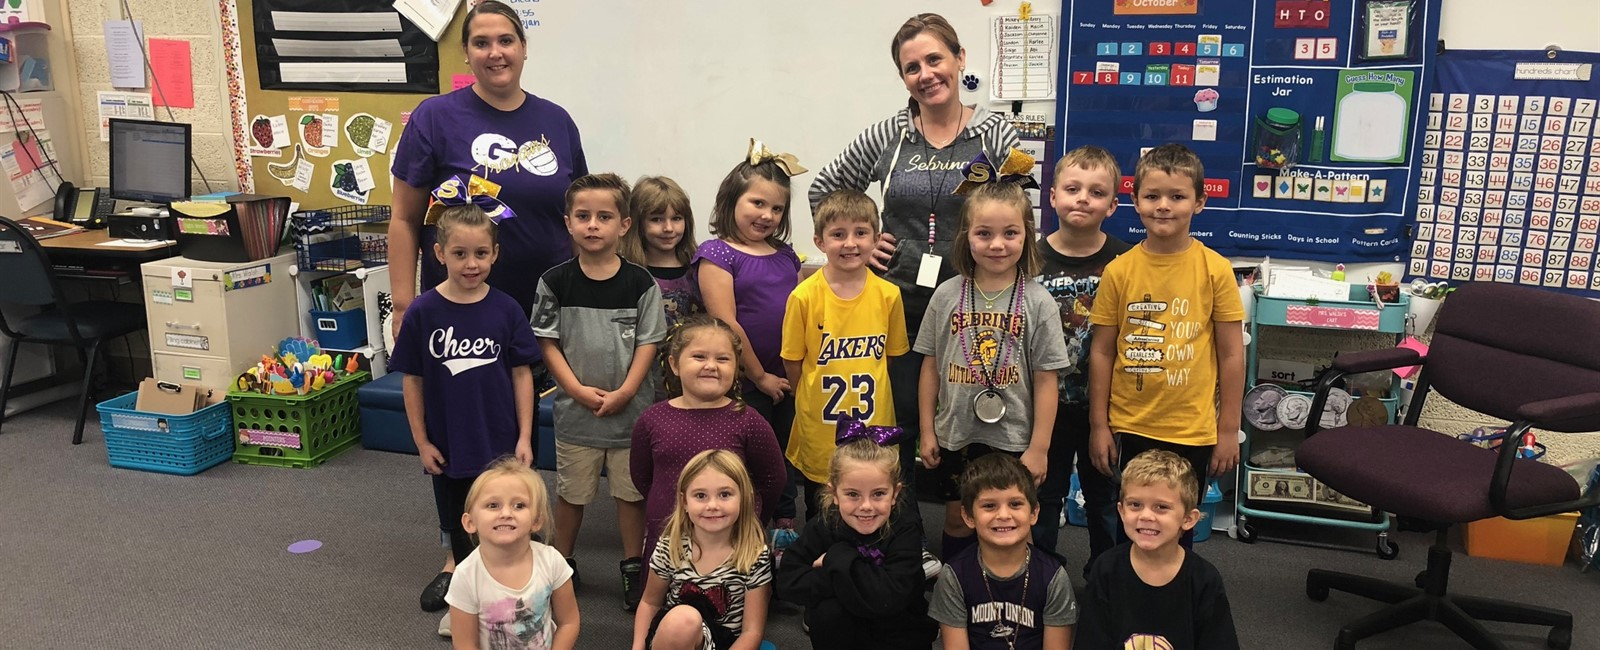 Purple & Gold Day during Spirit Week at B.L. Miller Elementary